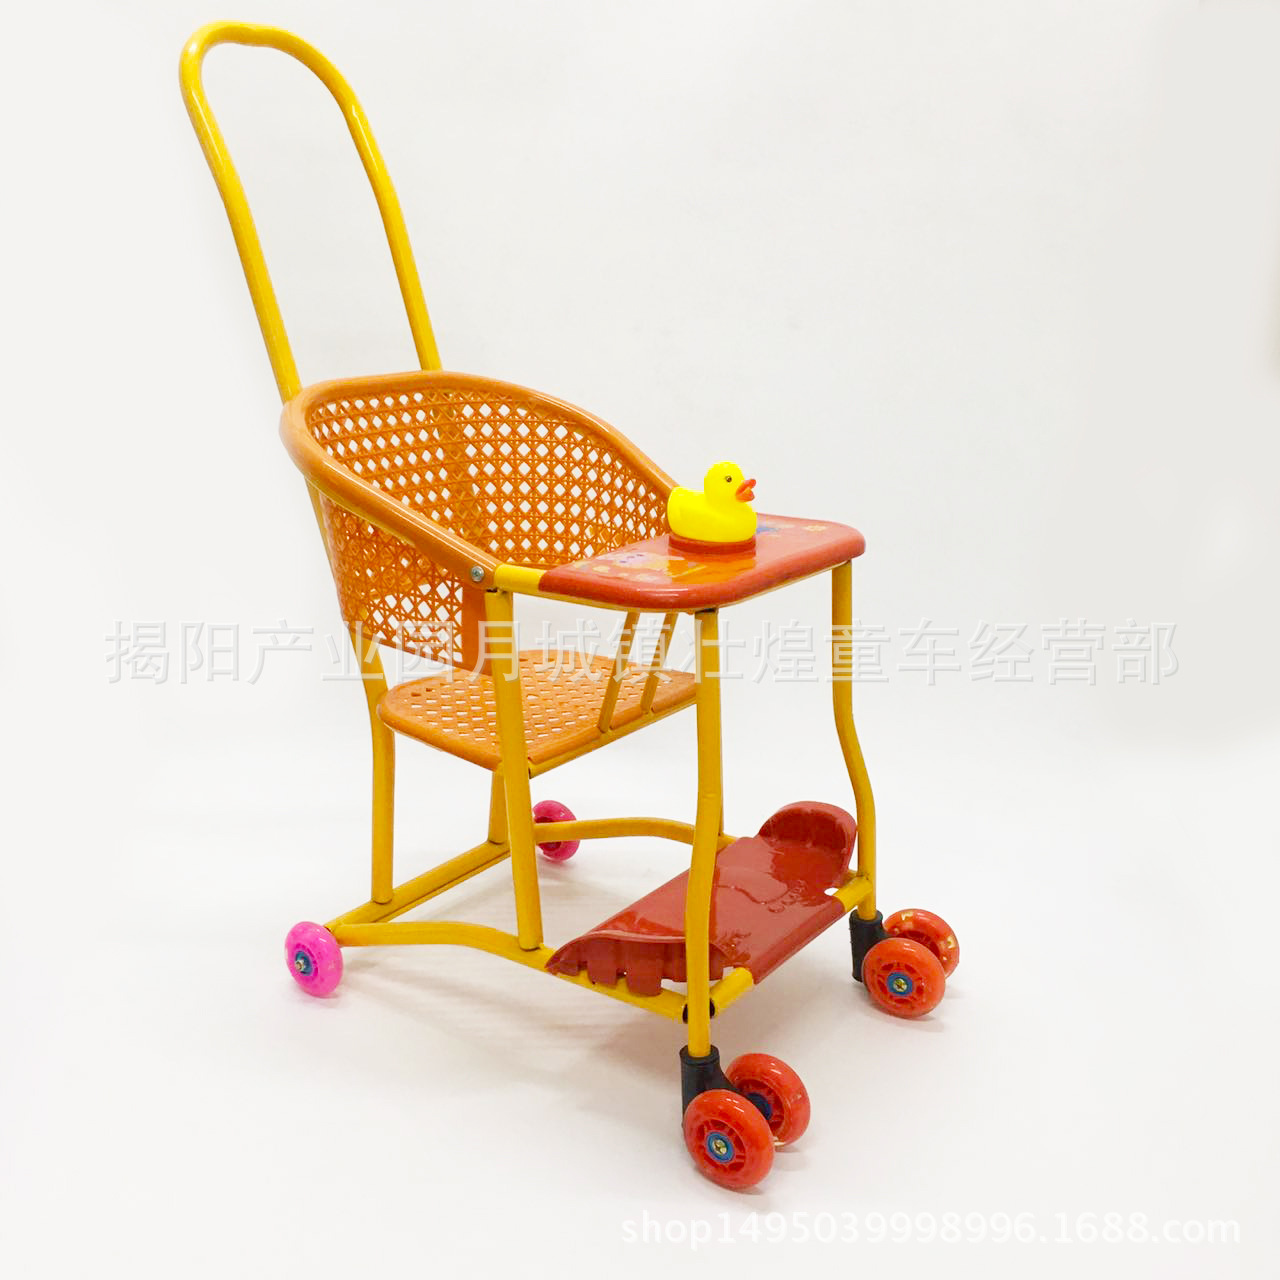 Ultra-lightweight Chinese Traditional Imitation Rattan Baby Stroller Universal Wheel Toddler Trolly Car Sit Baby Small Stroller